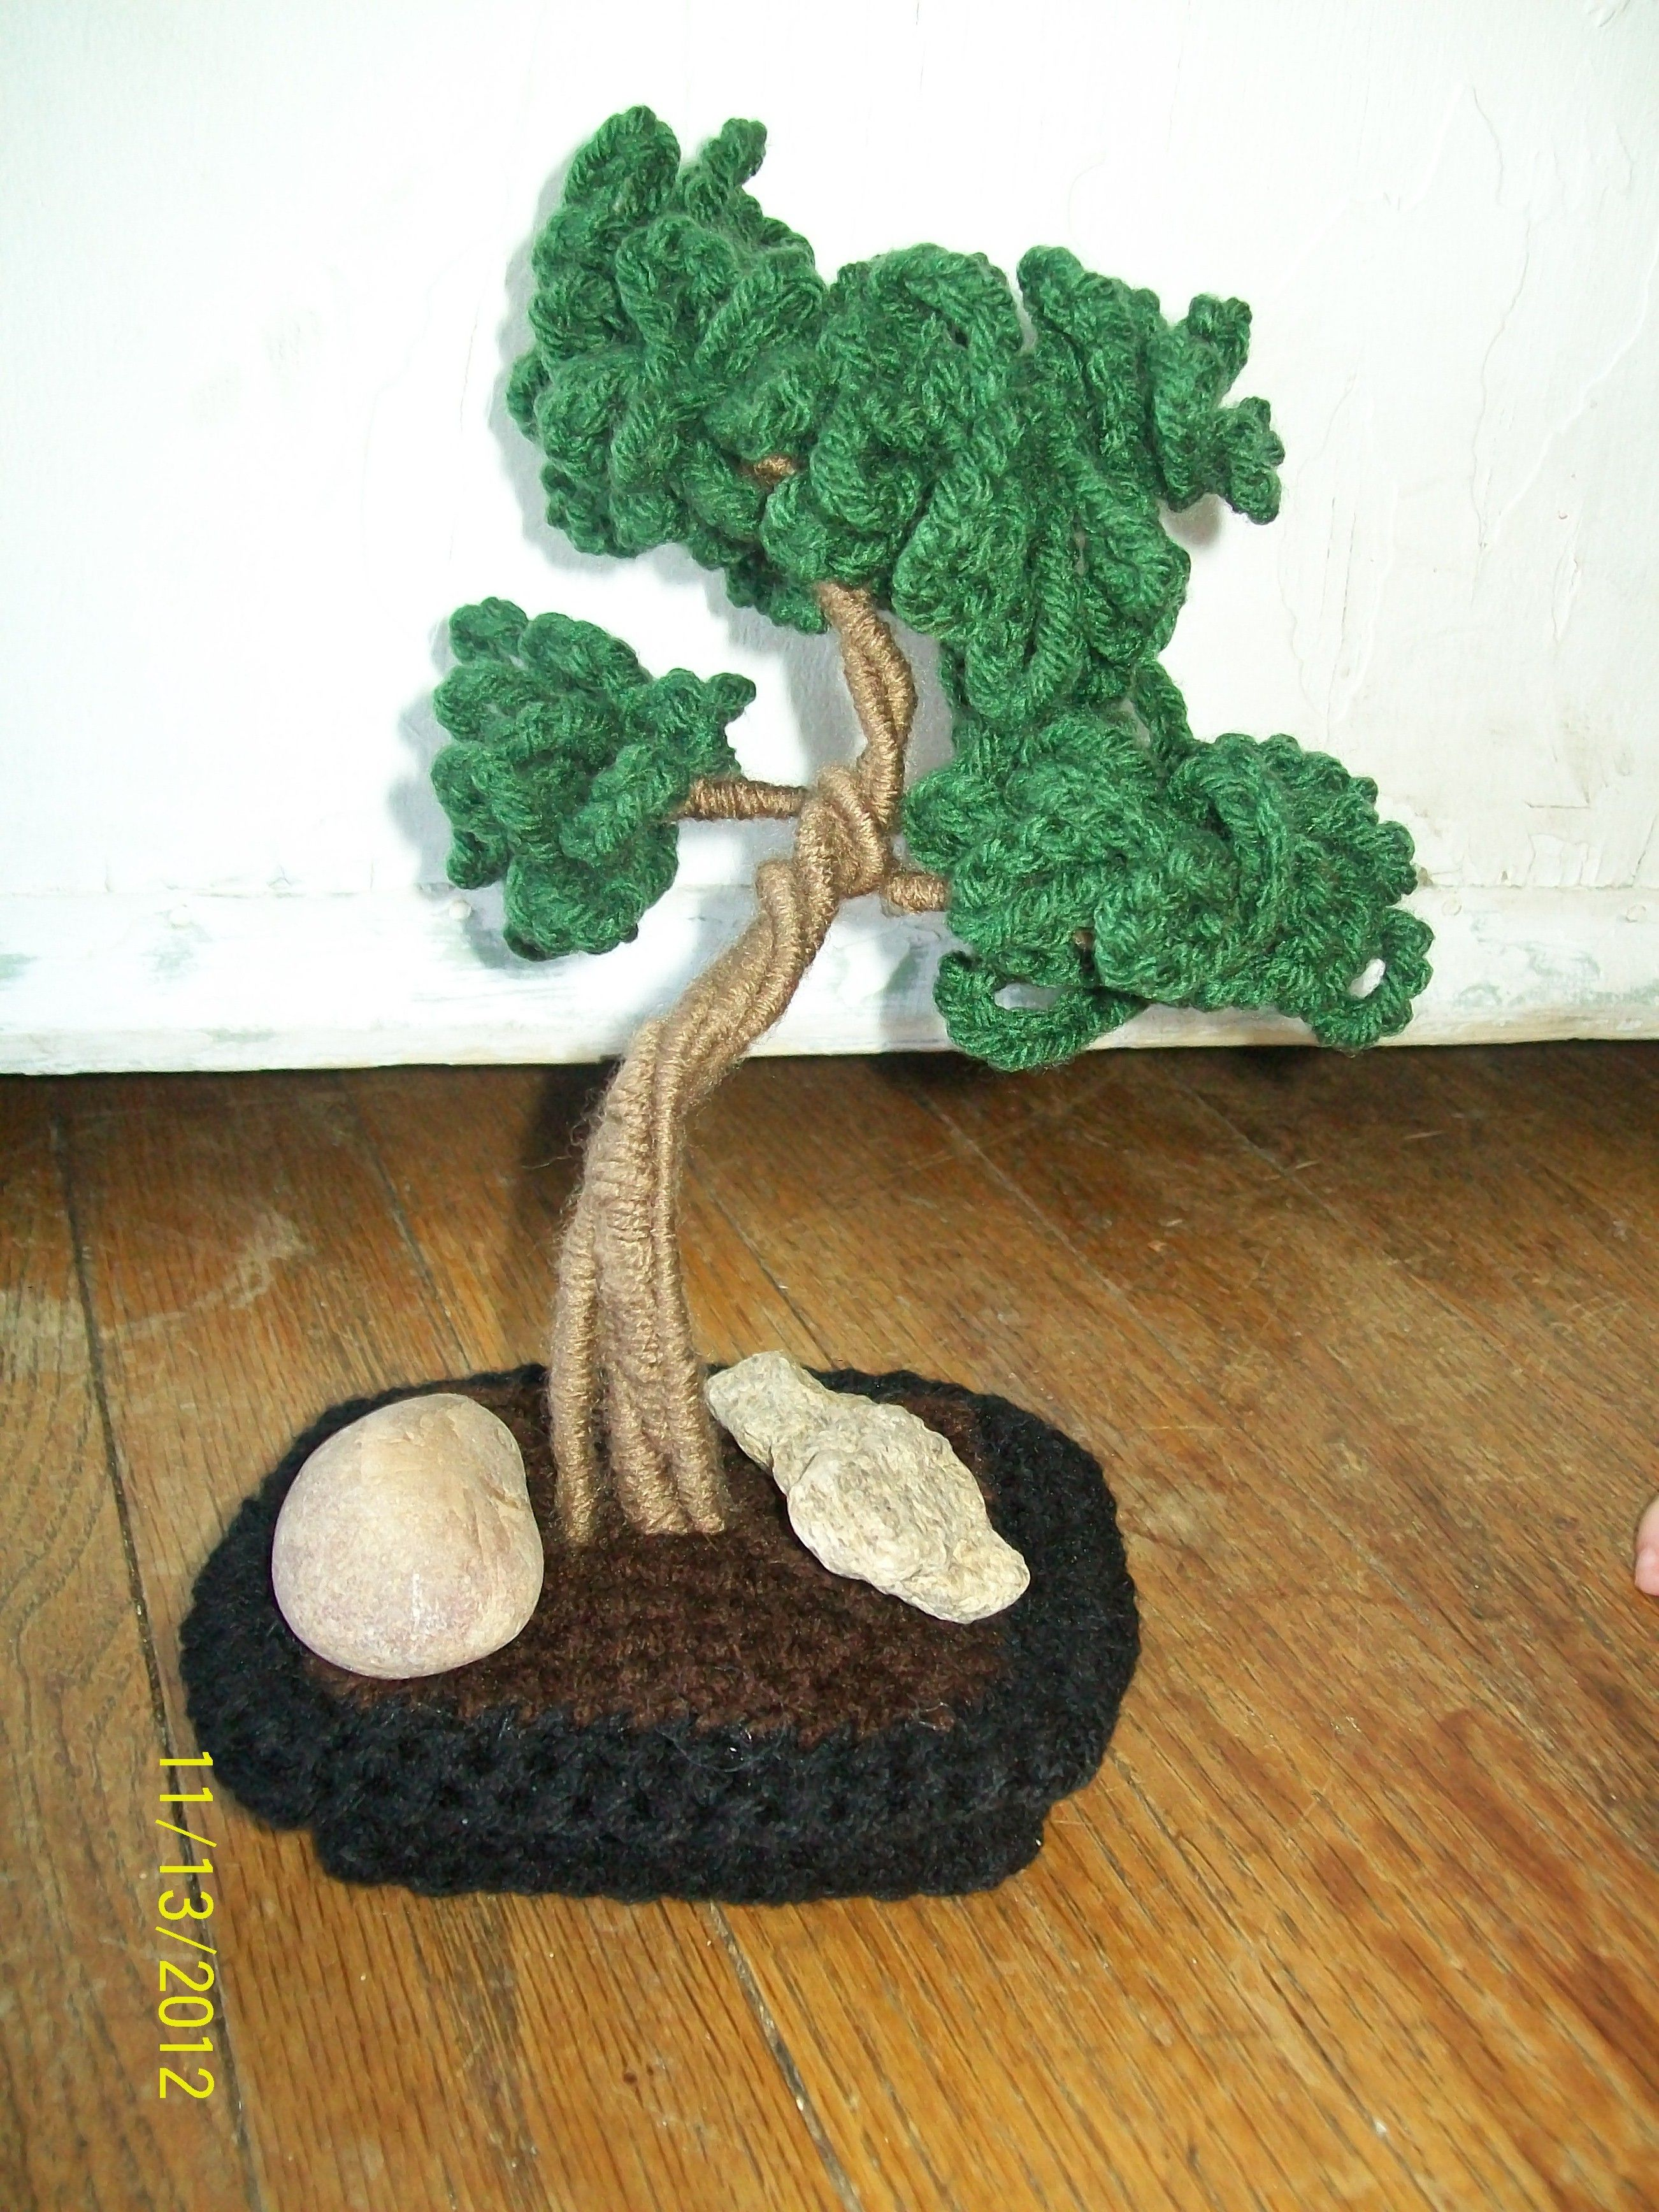 Bonsai tree bonsai crochet and amigurumi patterns bonsai tree bankloansurffo Choice Image